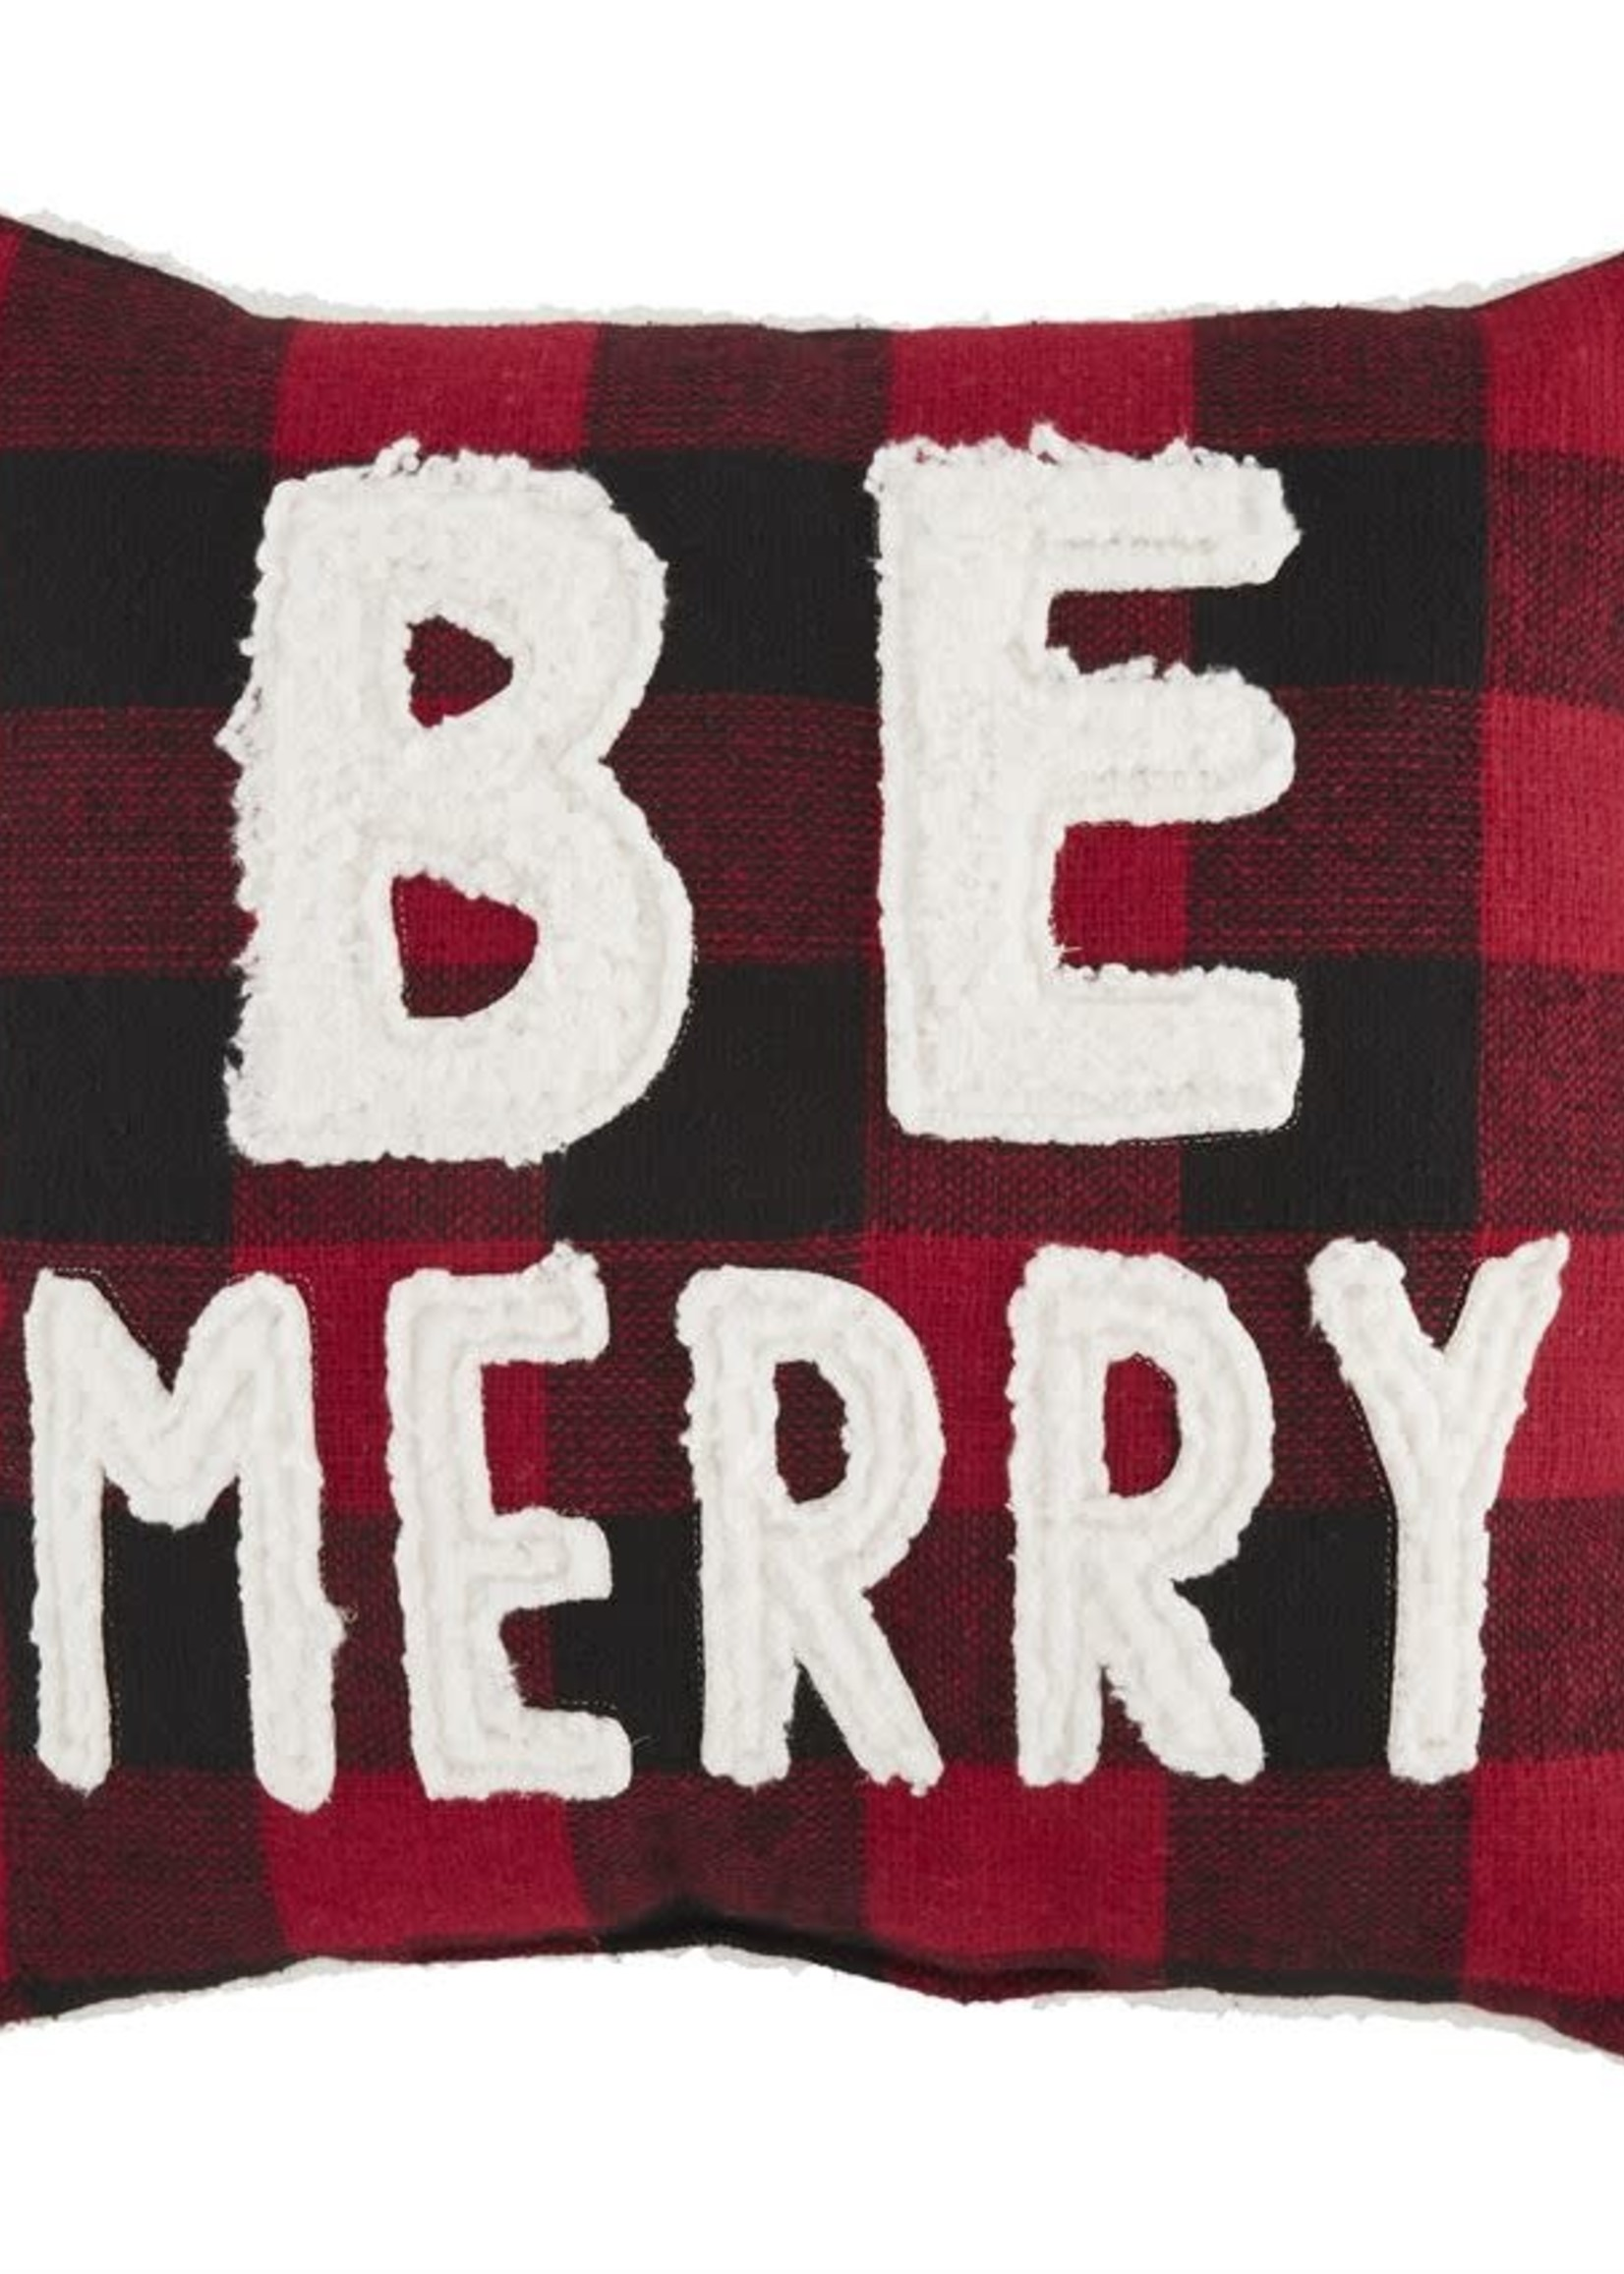 BE MERRY CHECK FUZZY PILLOW